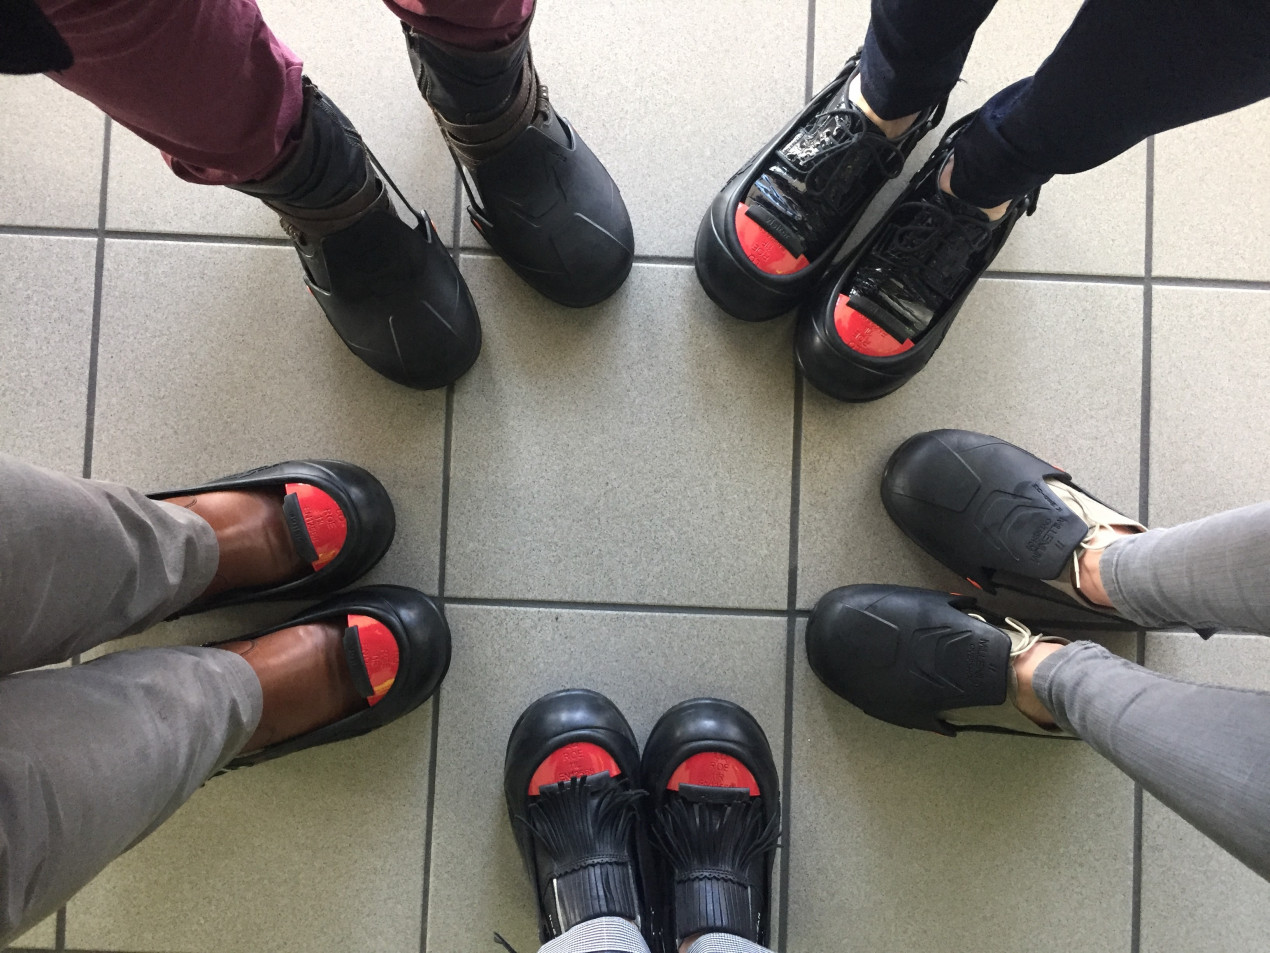 We must wear Safety Shoes for the visit